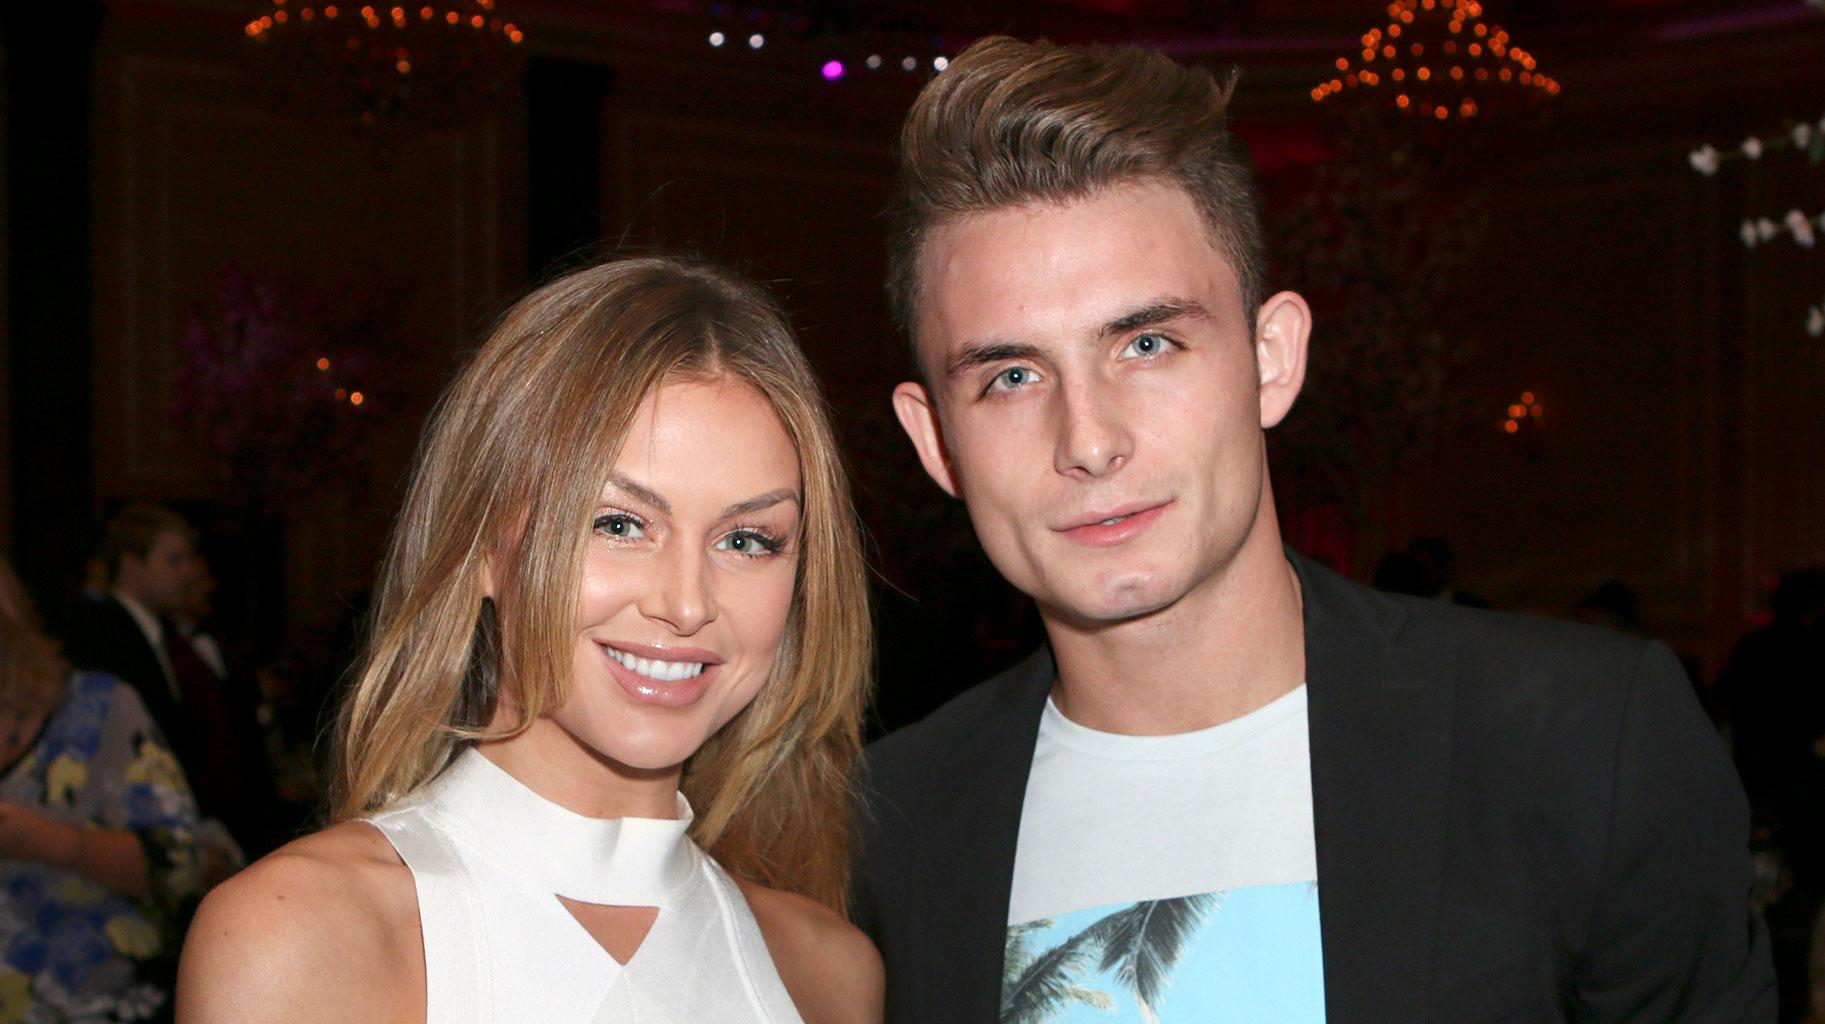 James Kennedy Reveals He And Lala Kent Are Working On New Music Together After Ending Their Feud - 'Glad To Have My Friend Back'